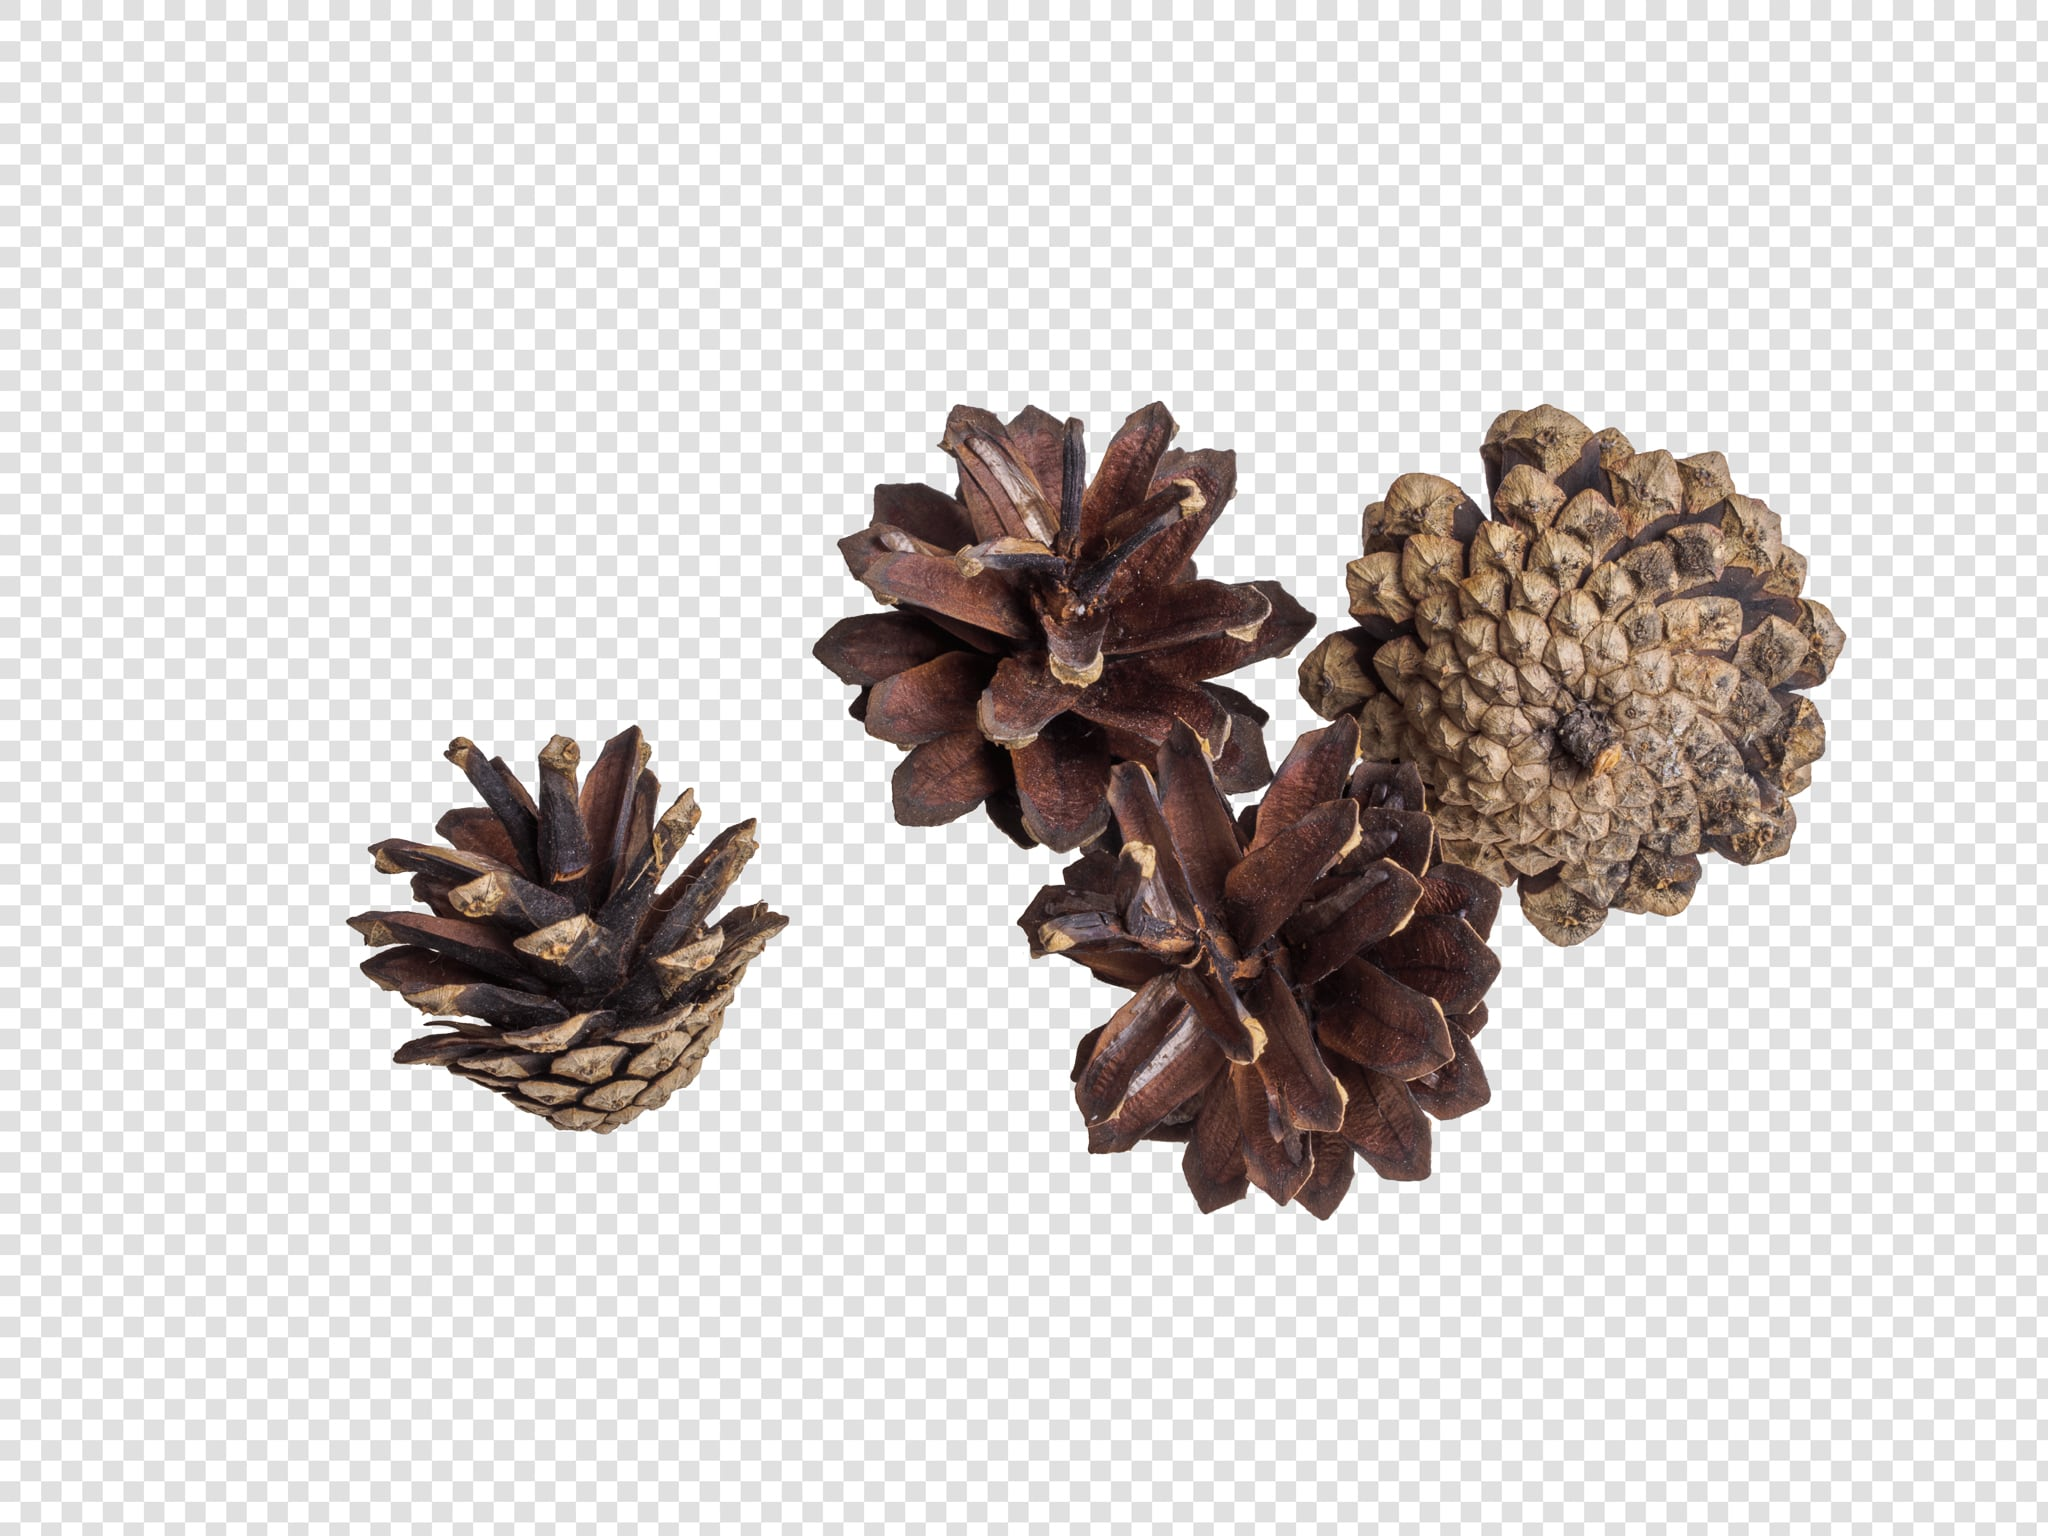 Dried flower PSD isolated image